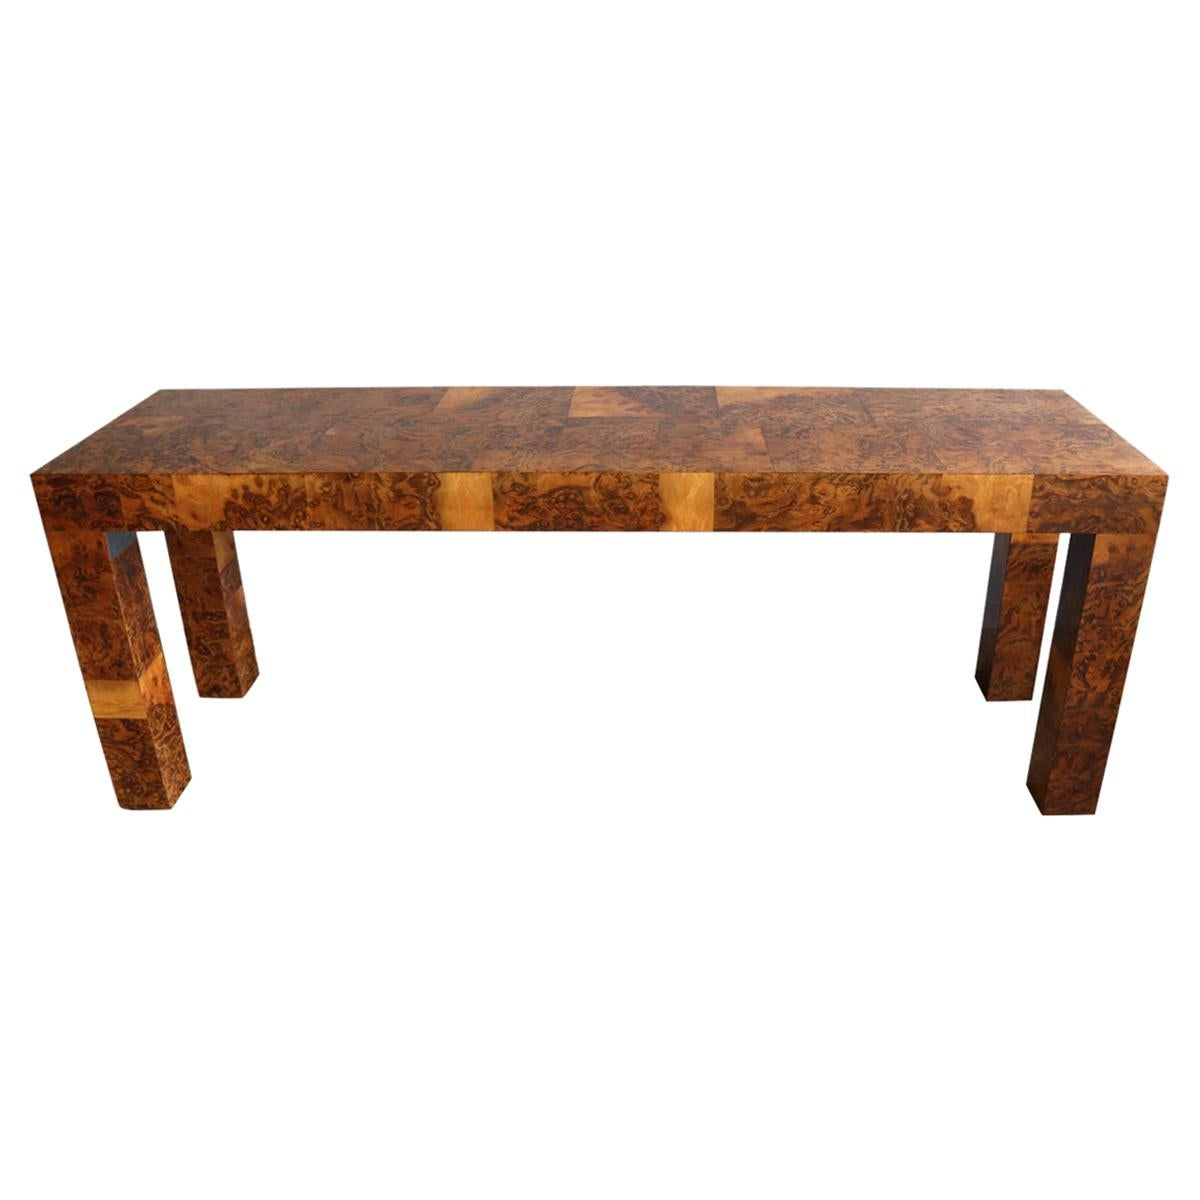 Midcentury Patchwork Table by Paul Evans